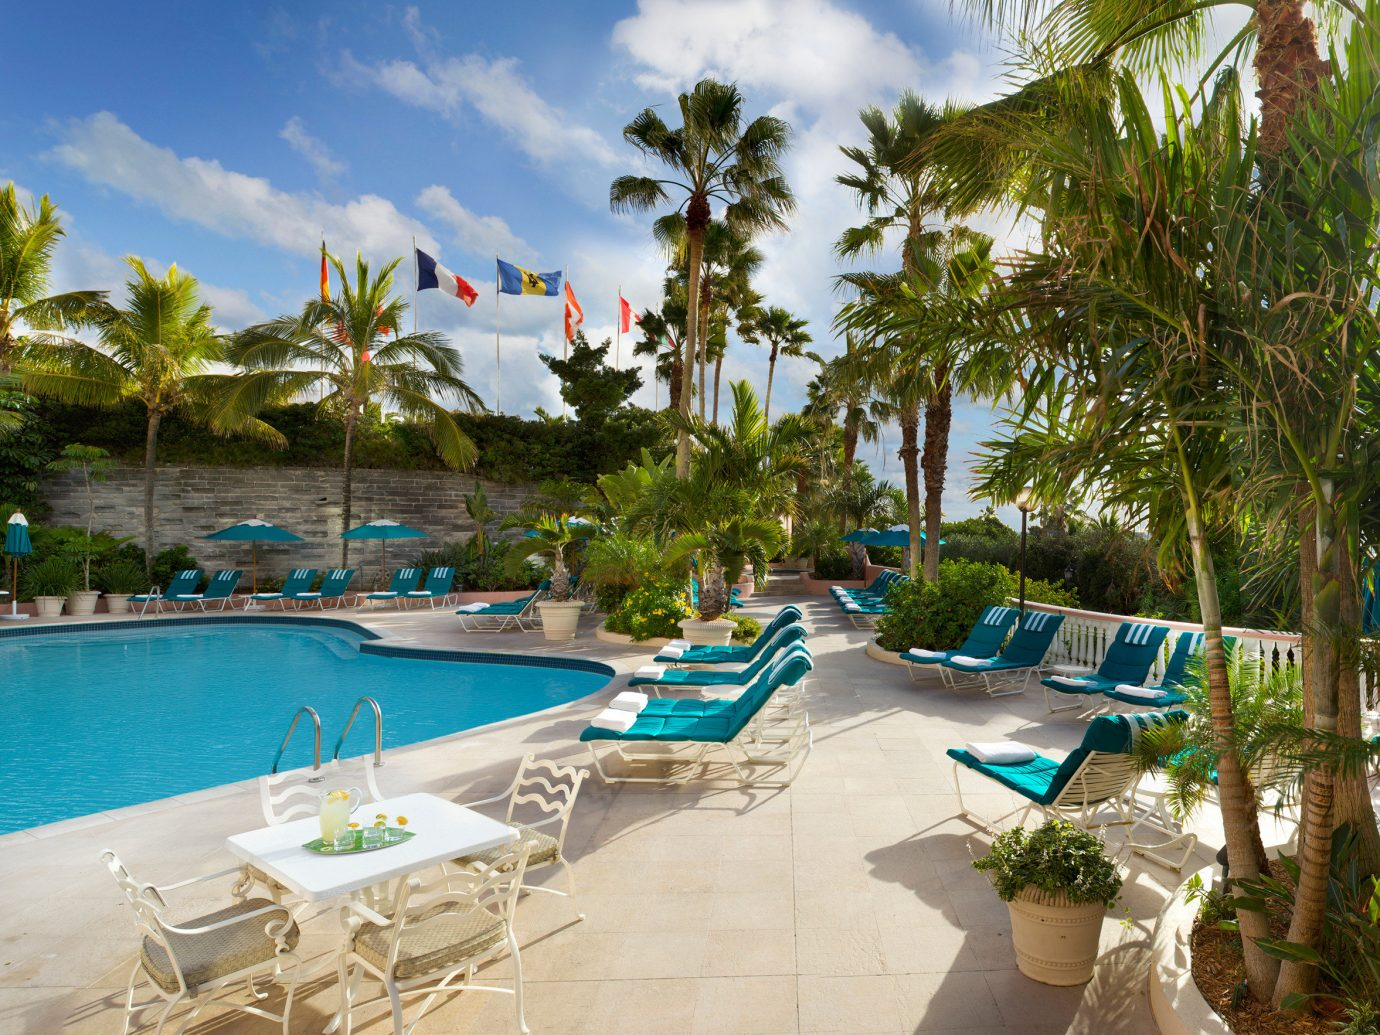 Hotels Living Lounge Luxury Pool tree outdoor sky leisure swimming pool property Resort Beach palm caribbean vacation estate condominium lined real estate Villa lawn Water park tropics arecales sandy shore day several